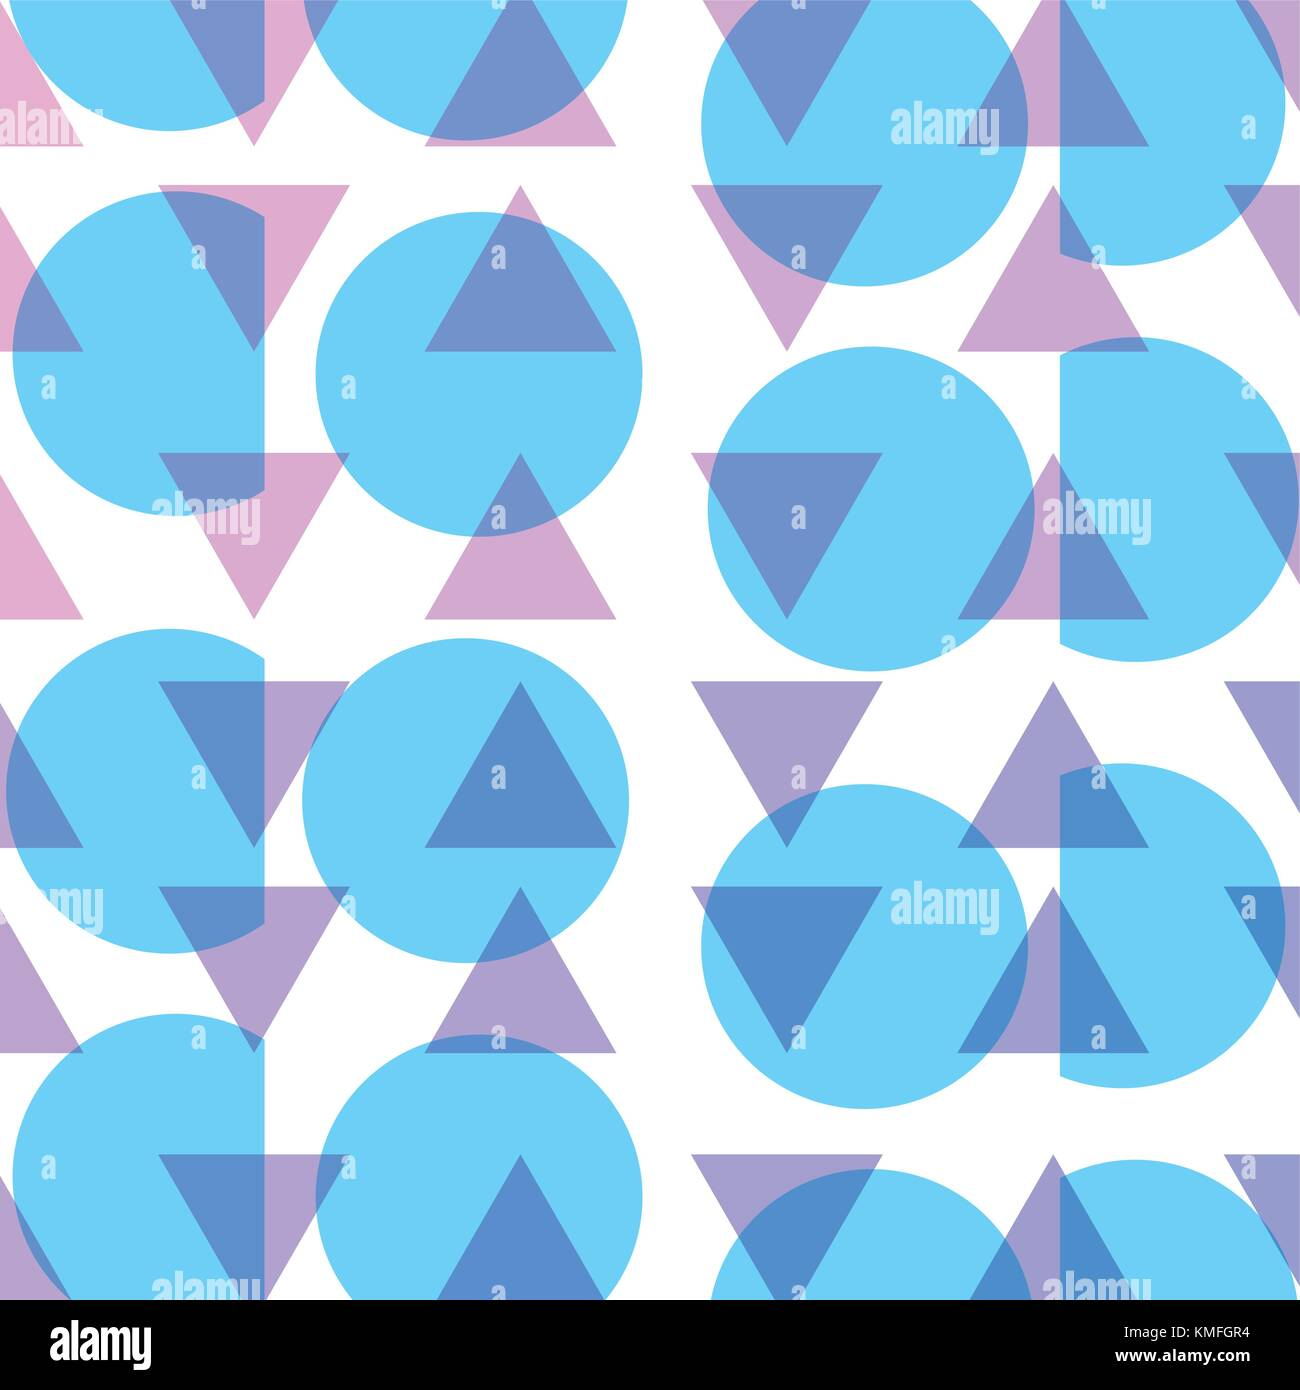 circle and triangle memphis style background - Stock Image